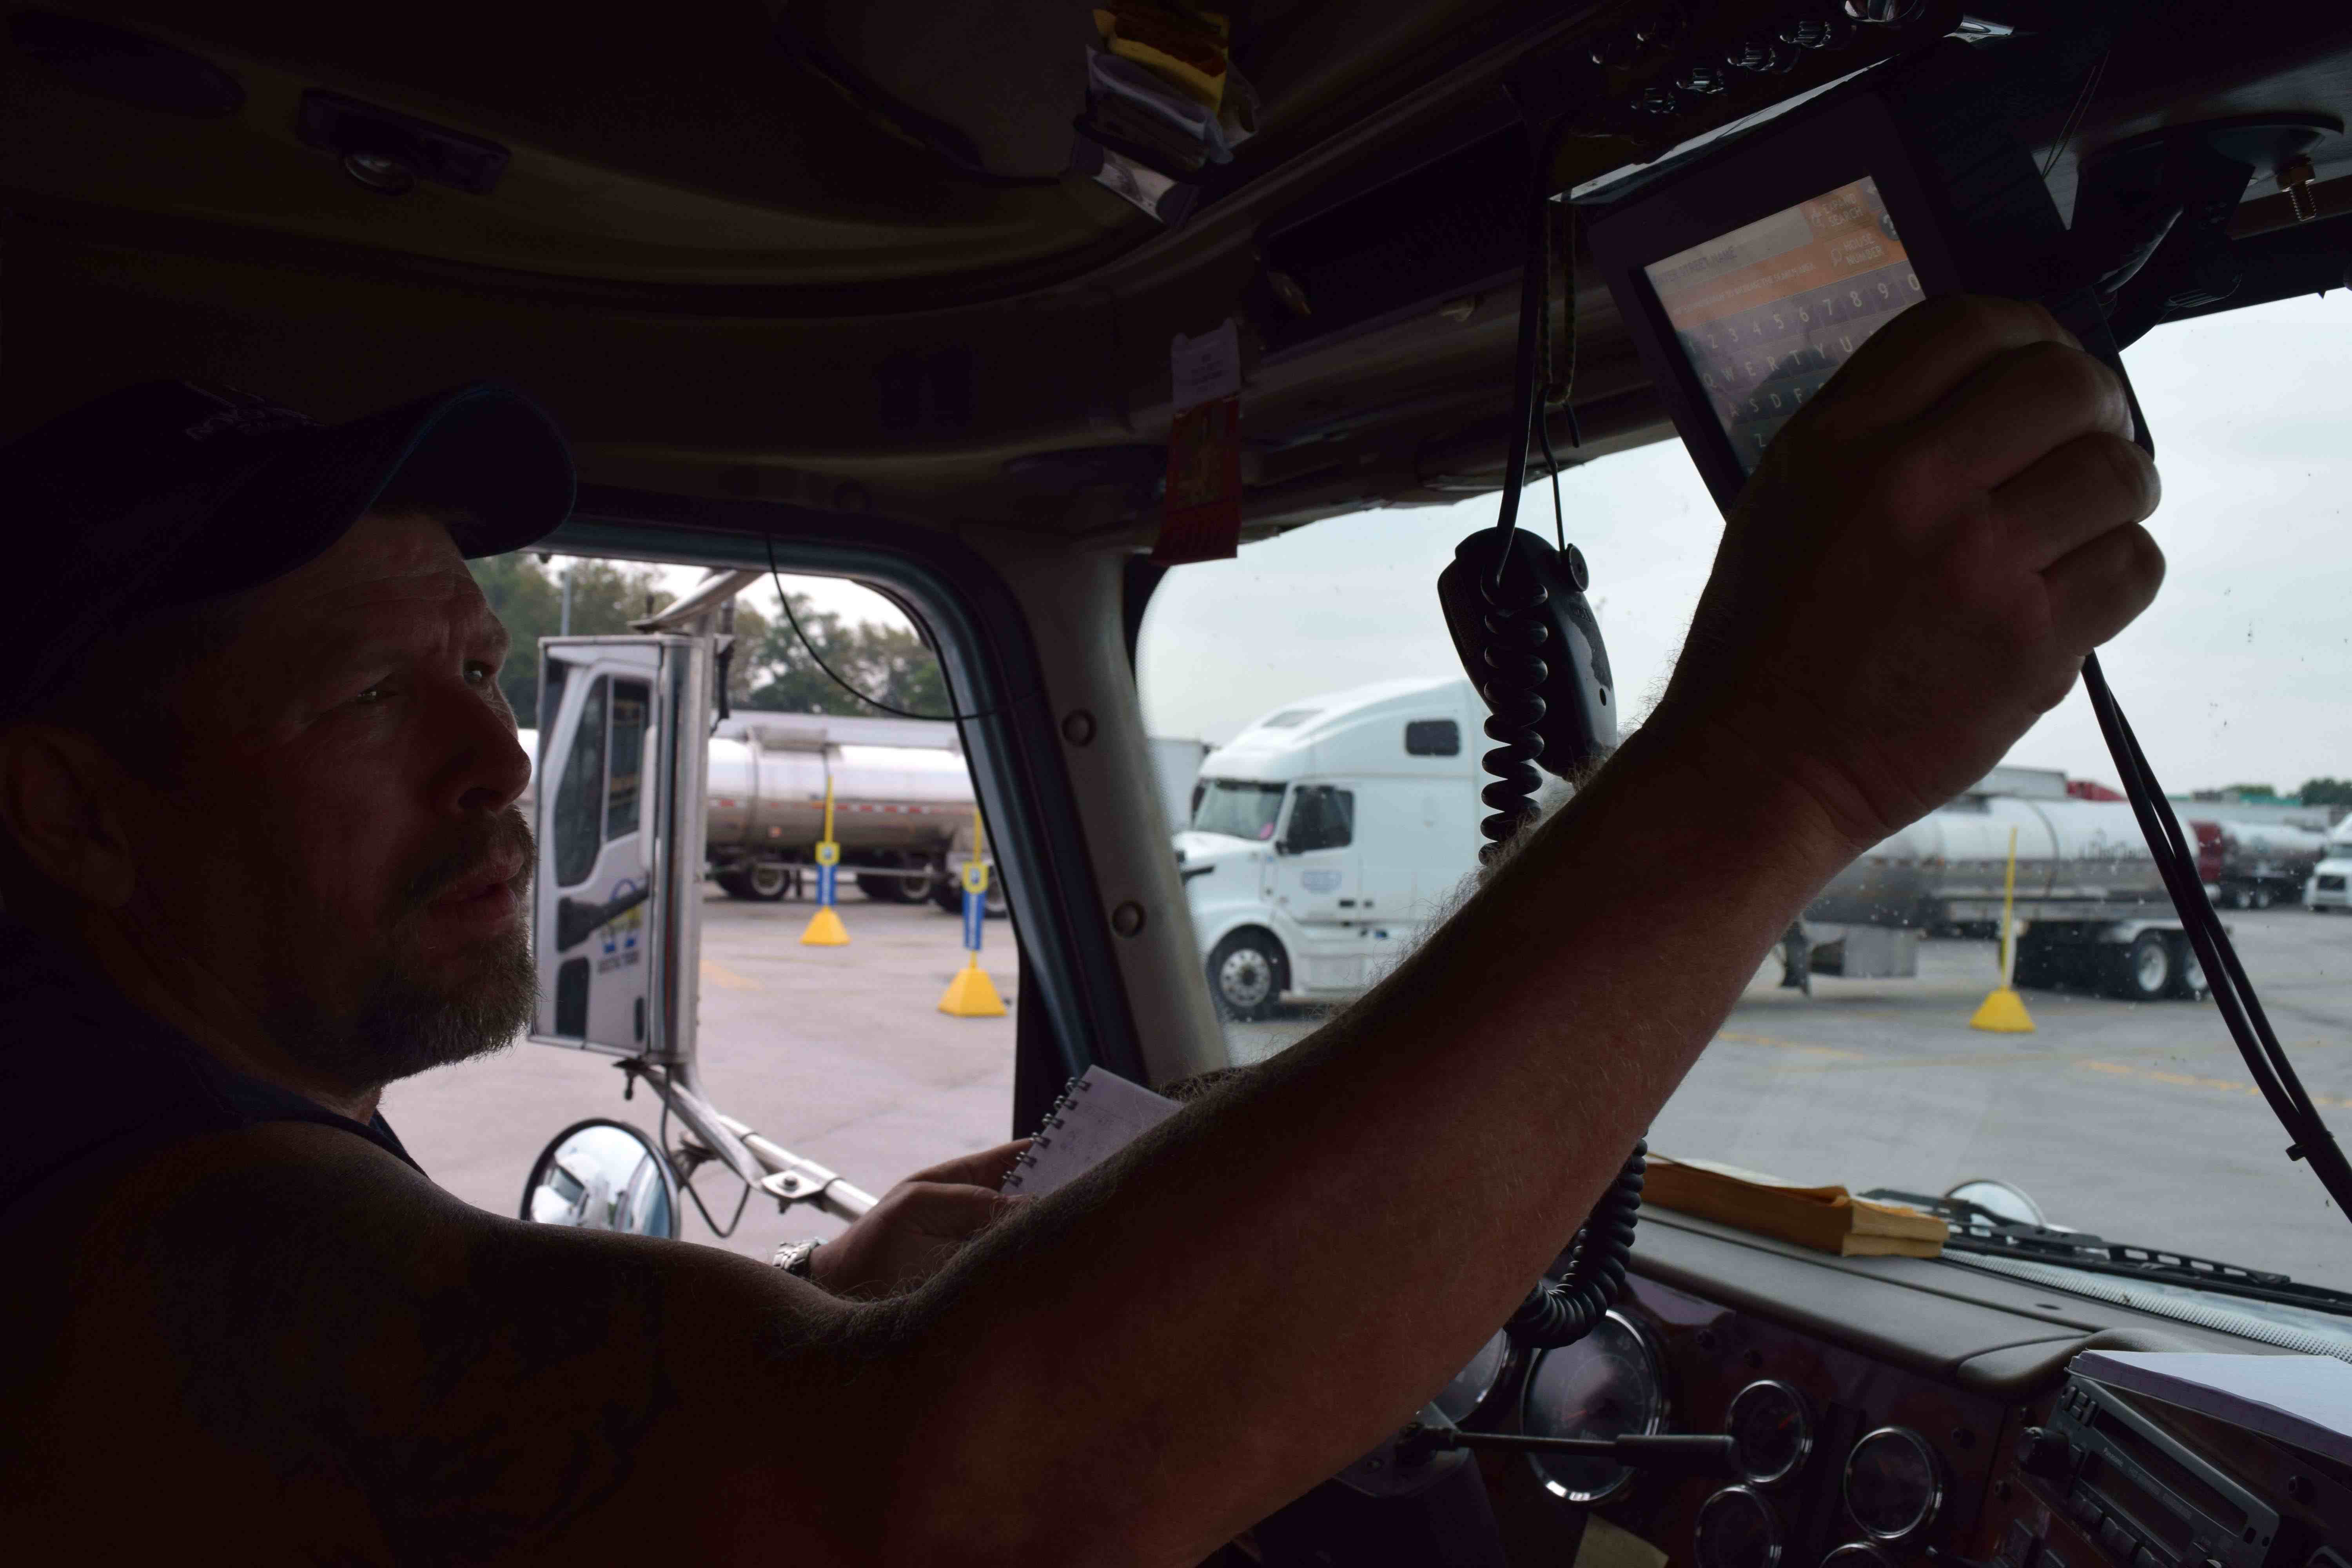 Heister can send and receive messages to his dispatcher at Boyd Bros. via the Rand McNally TND system in his truck. The system can also act as an electronic logging device. Heister currently still runs on paper logs, but when the ELD mandate takes effect, he can opt to use the existing Rand system if he chooses to.